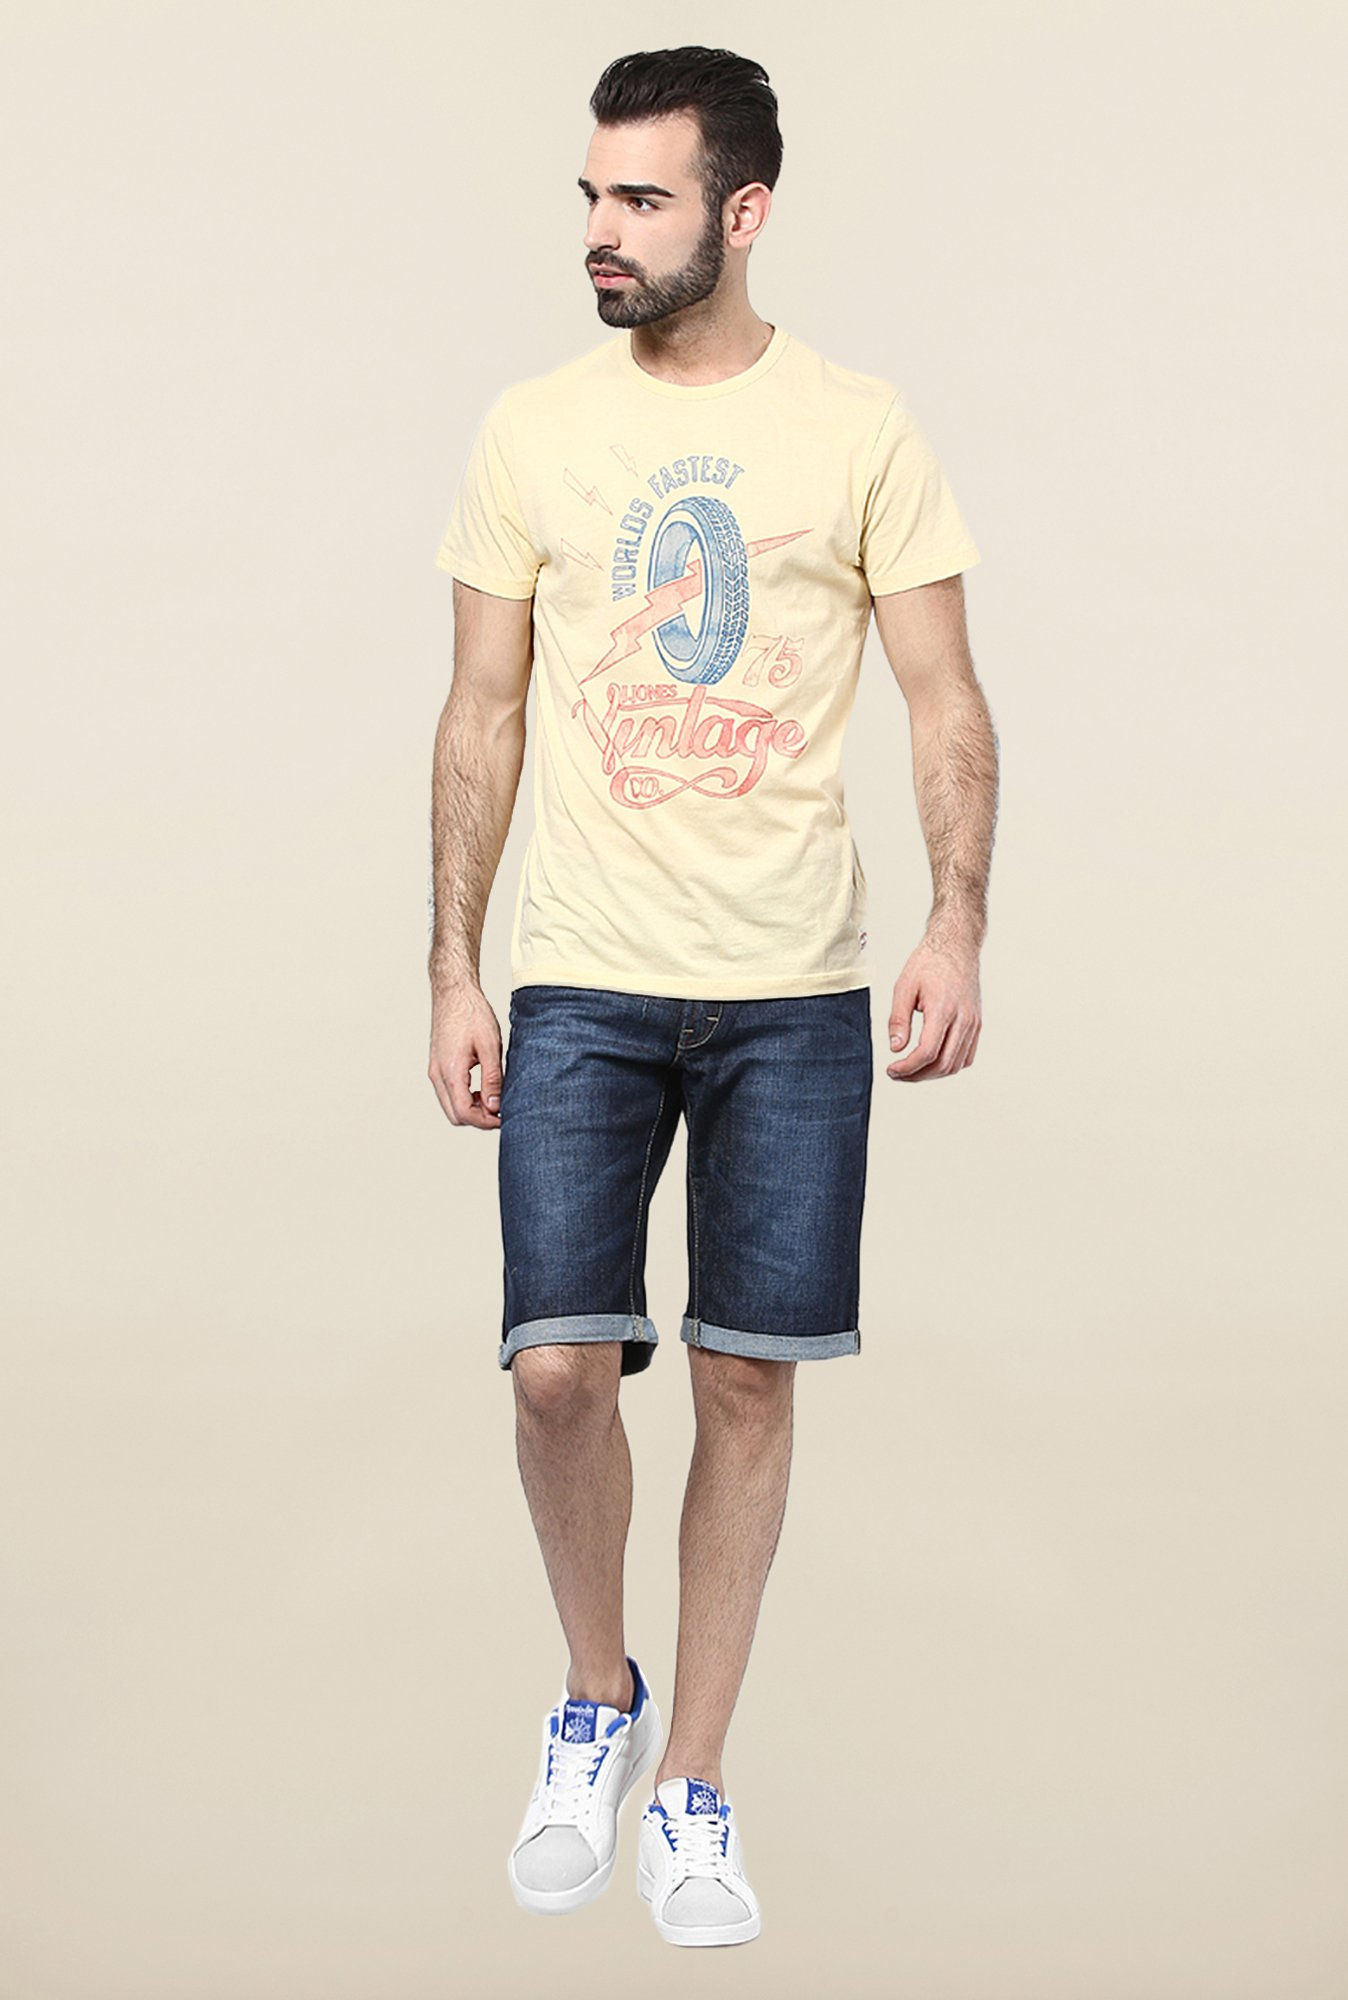 Jack & Jones Yellow Round Neck T-Shirt